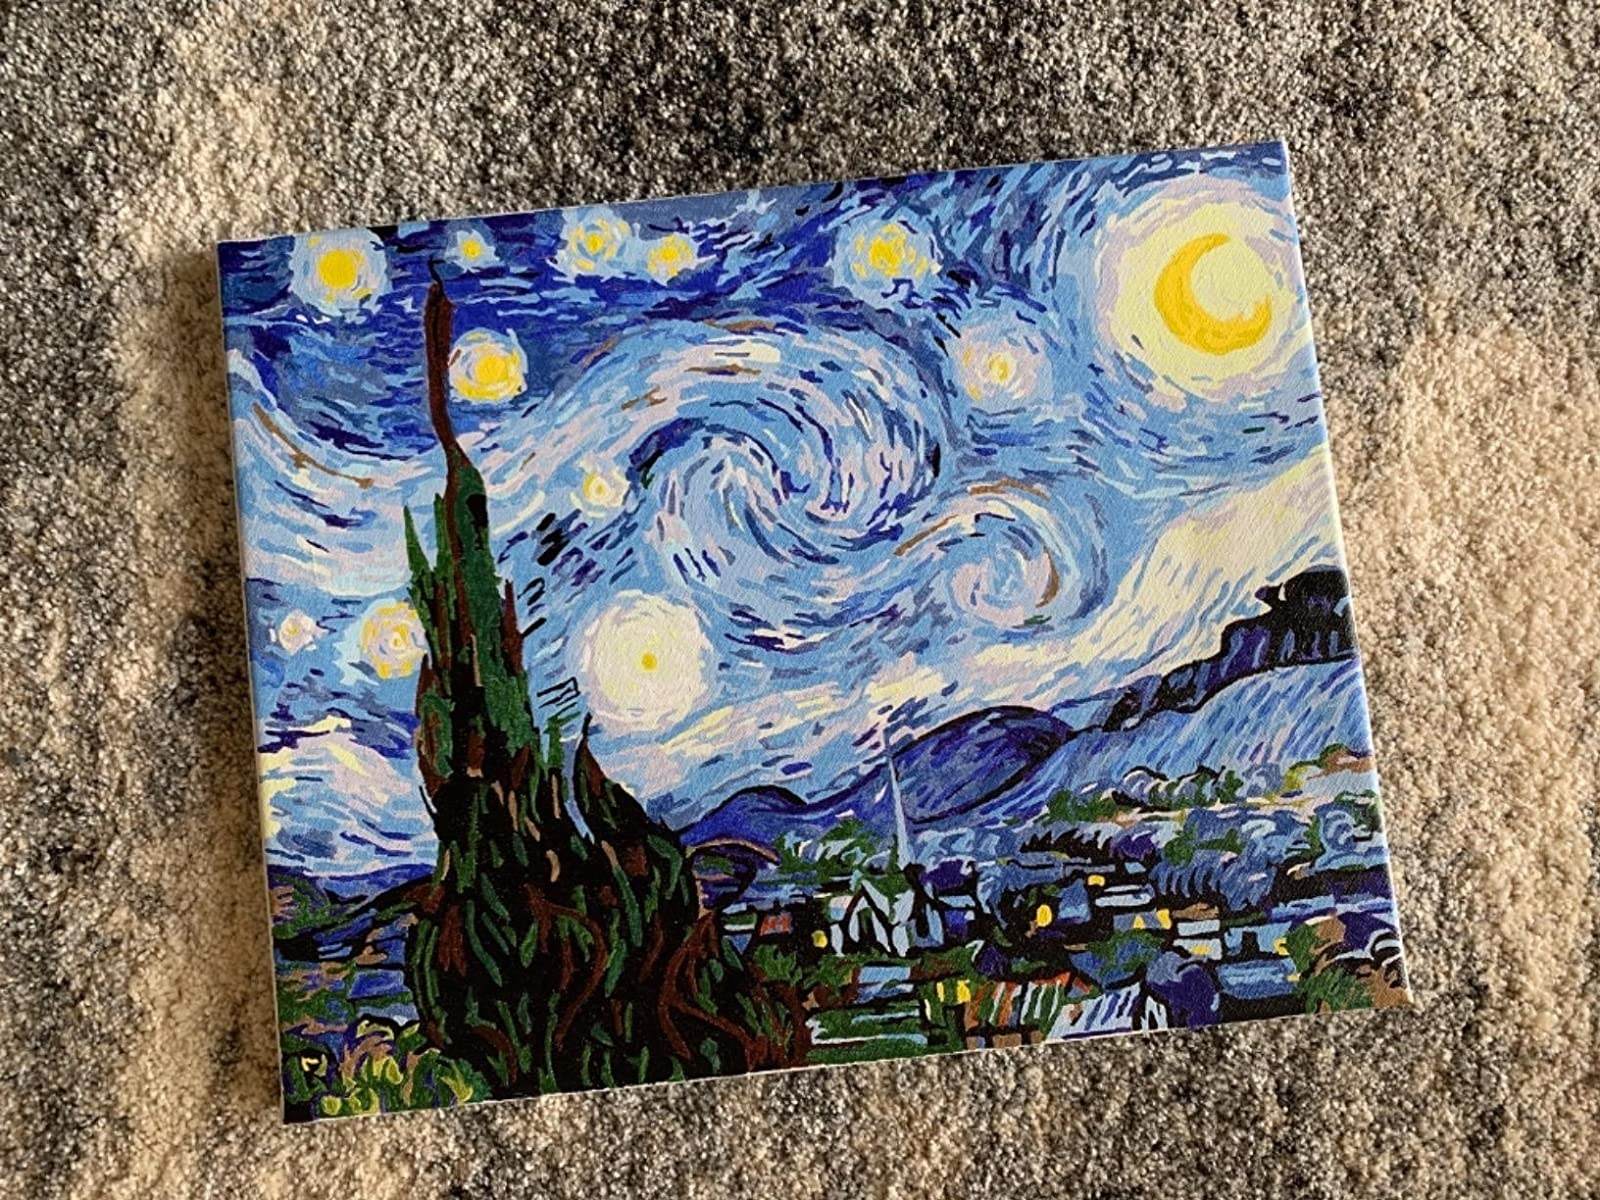 A completed paint-by-numbers canvas